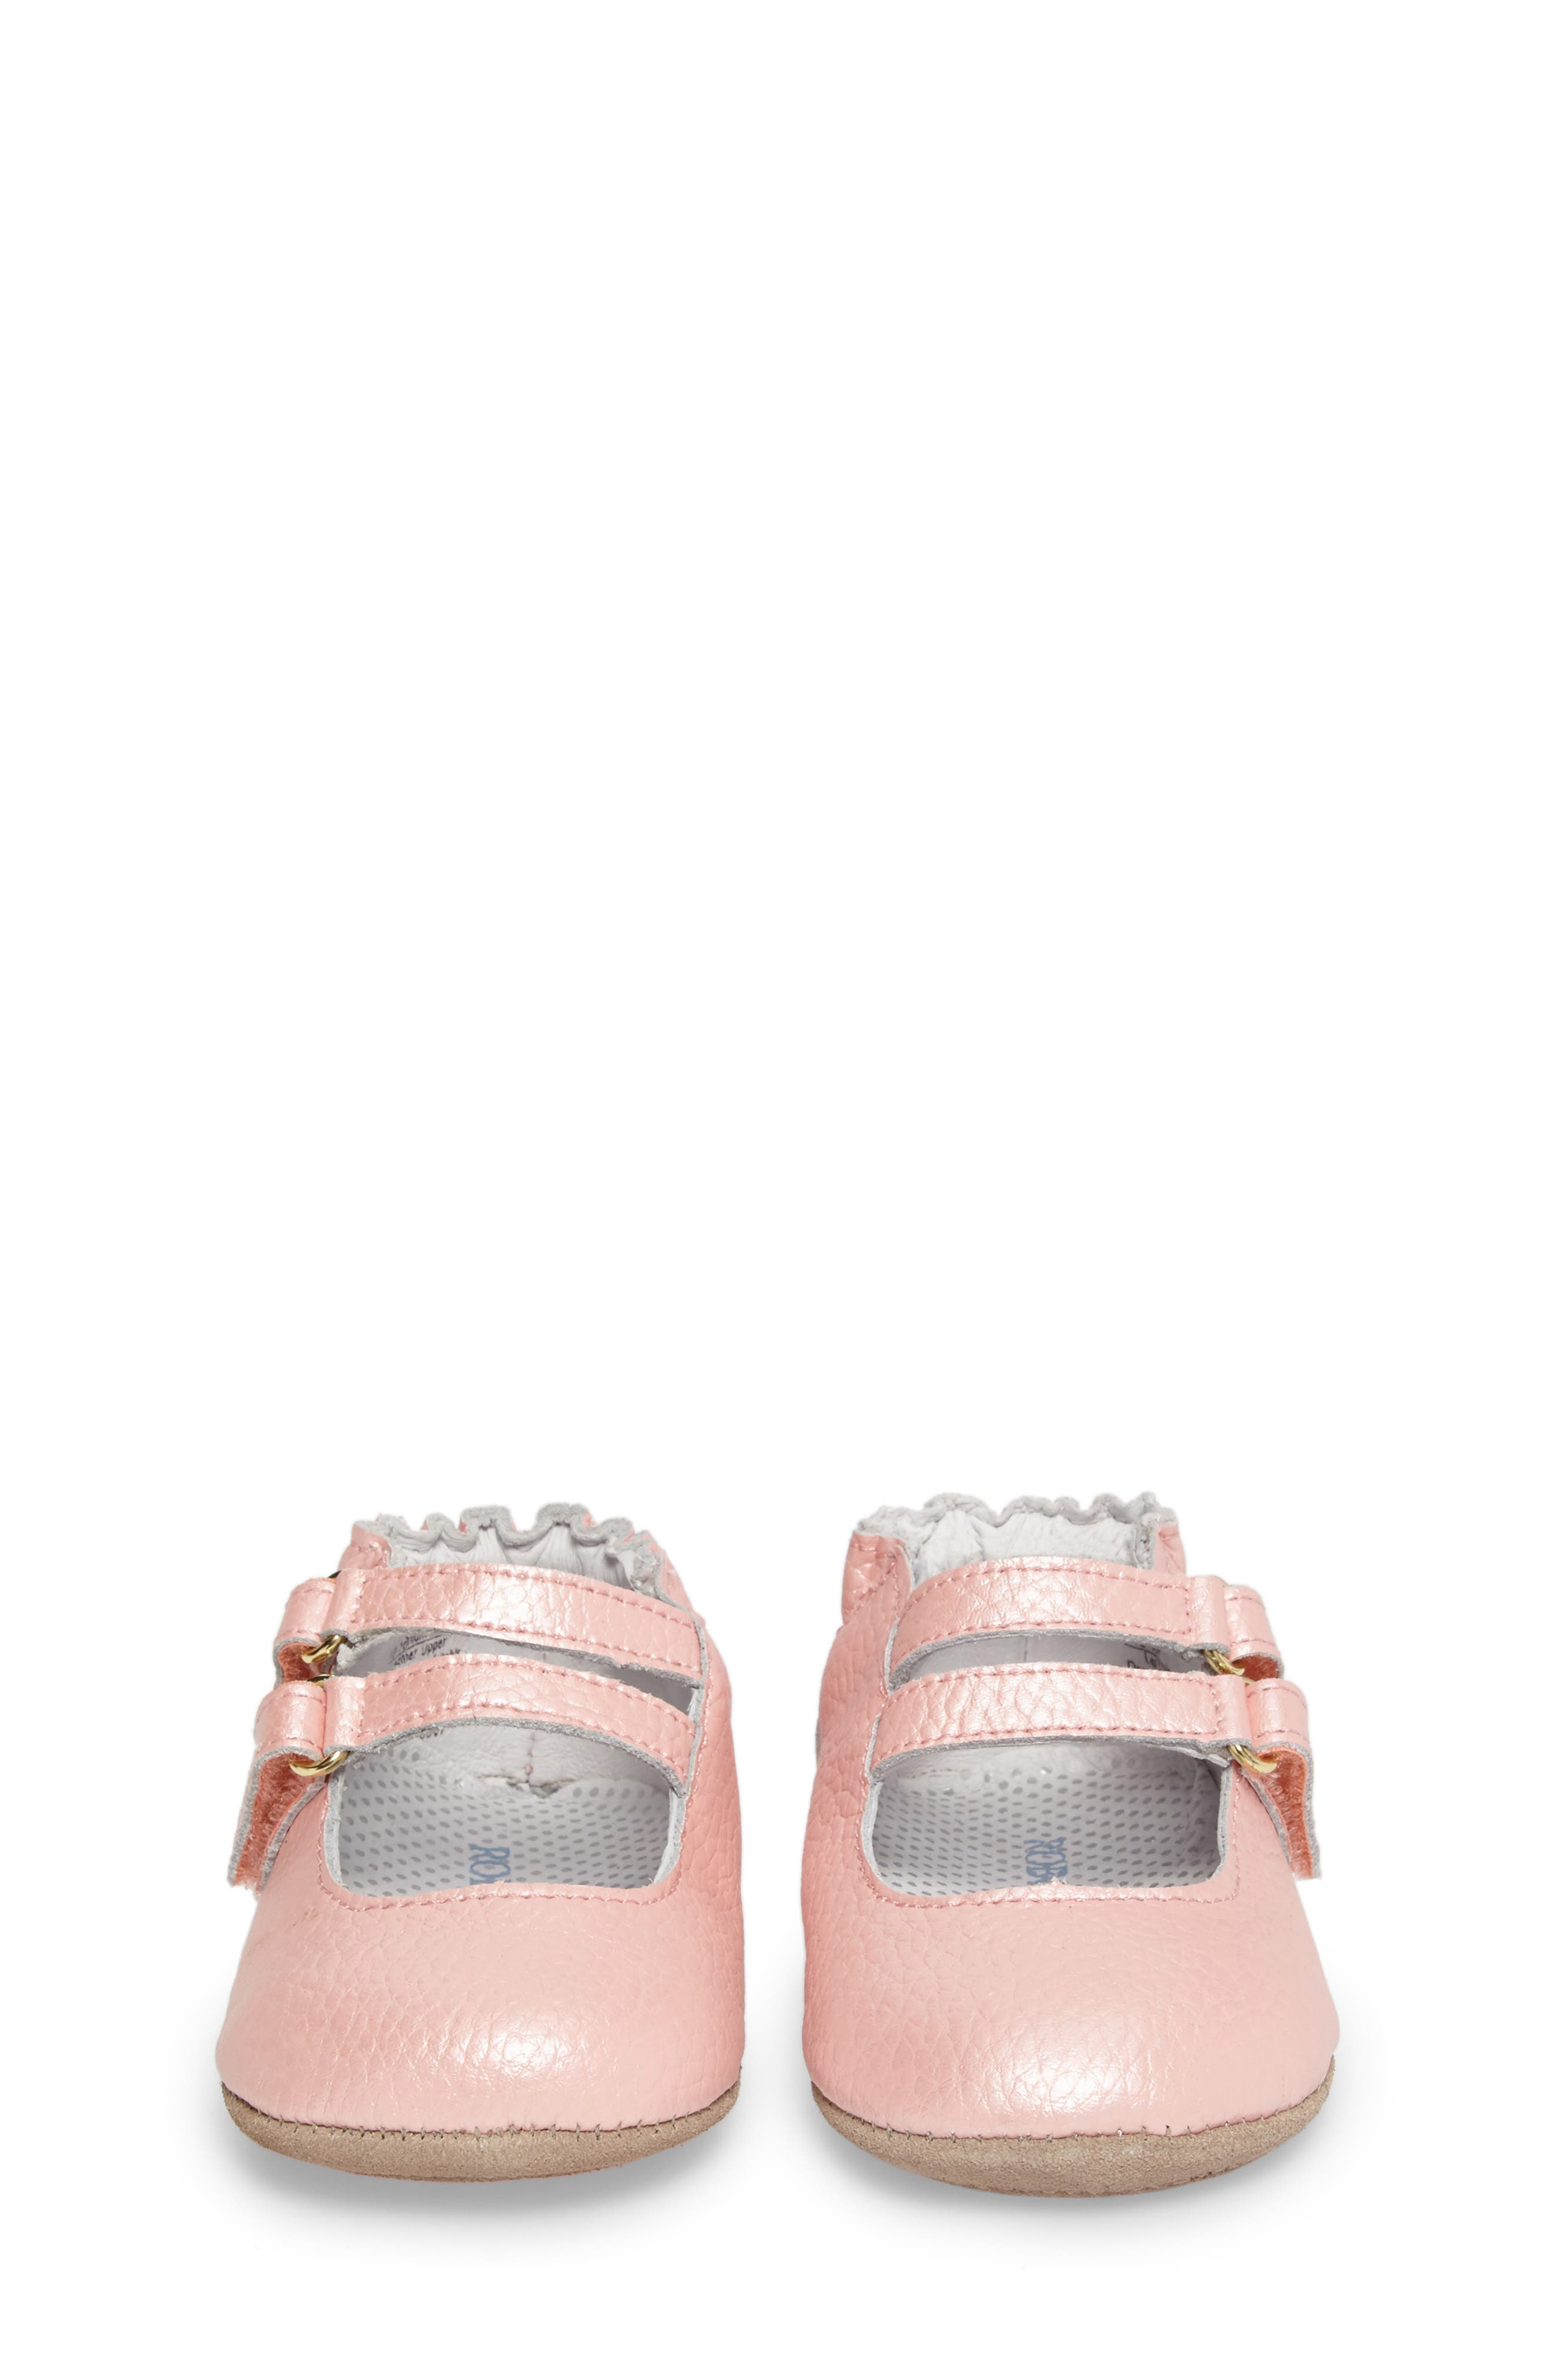 Rose Mary Jane Crib Shoe,                             Alternate thumbnail 4, color,                             ROSE